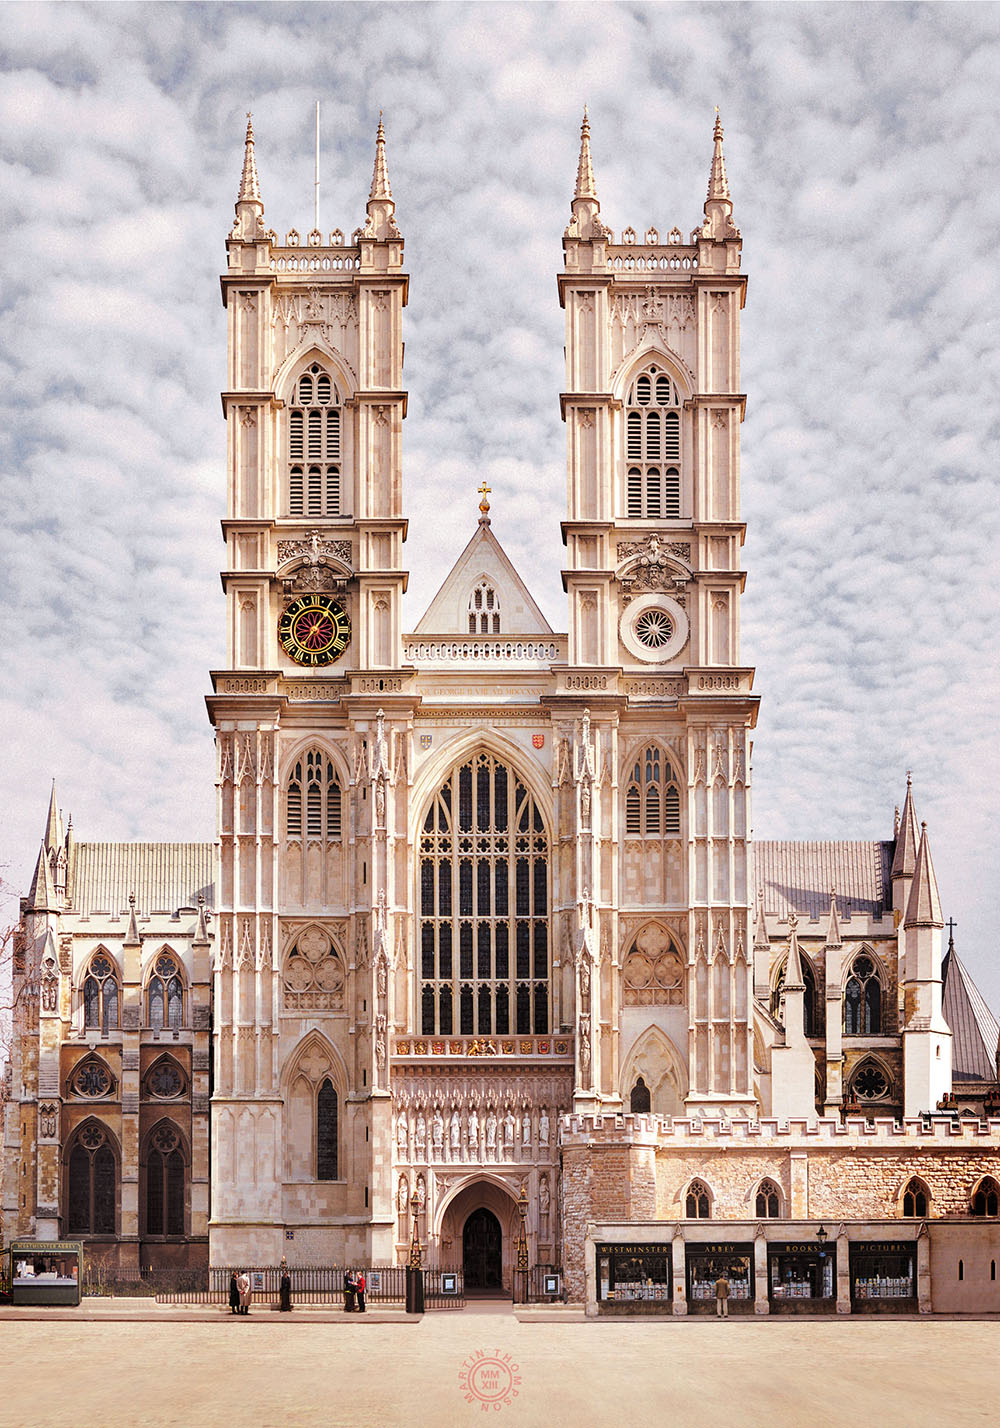 westminster abbey, london.jpg